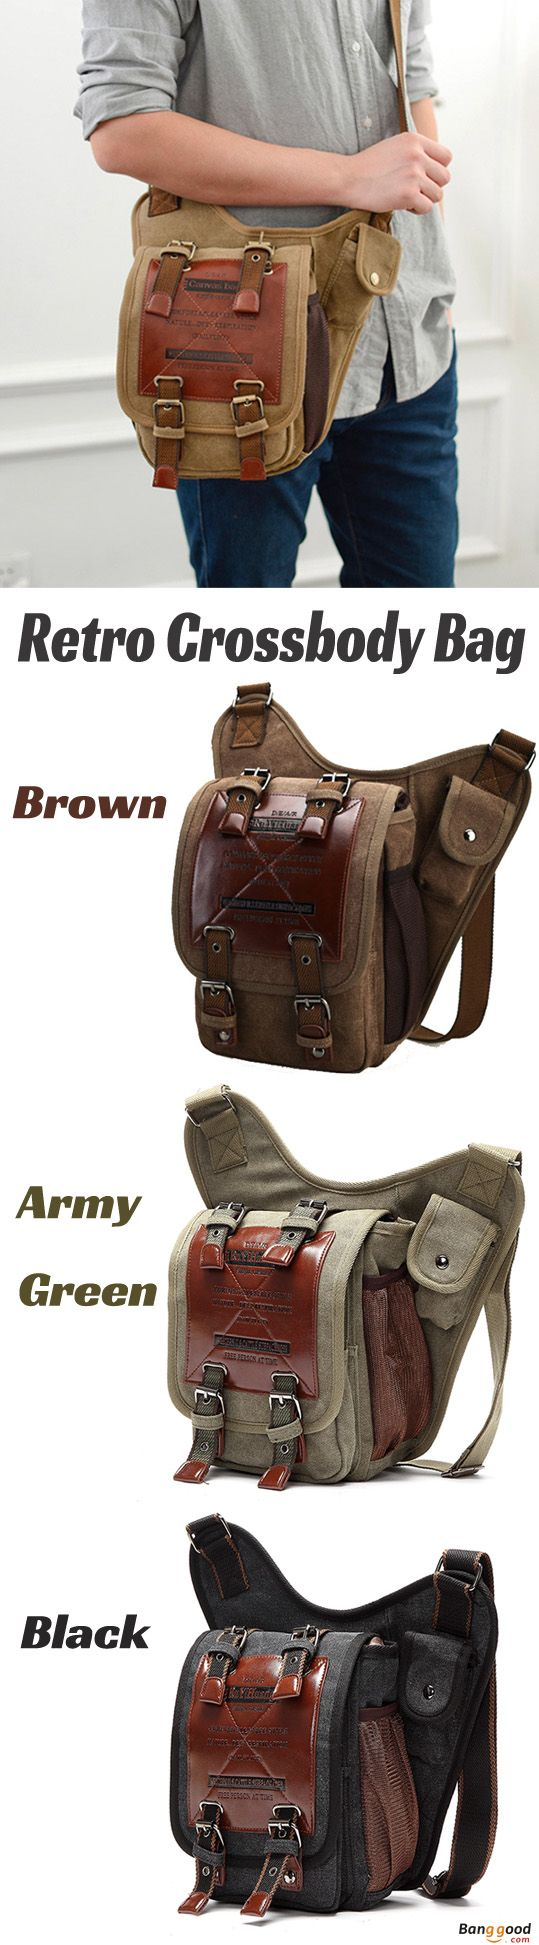 US$31.89 + Free shipping.Men's Bag, Canvas Bag, Retro Bag, Travel Bag, Crossbody Bag, Chest Bag. Color: Brown, Black, Army Green.Material: Canvas.Lots of room Helps You Hold Everything.